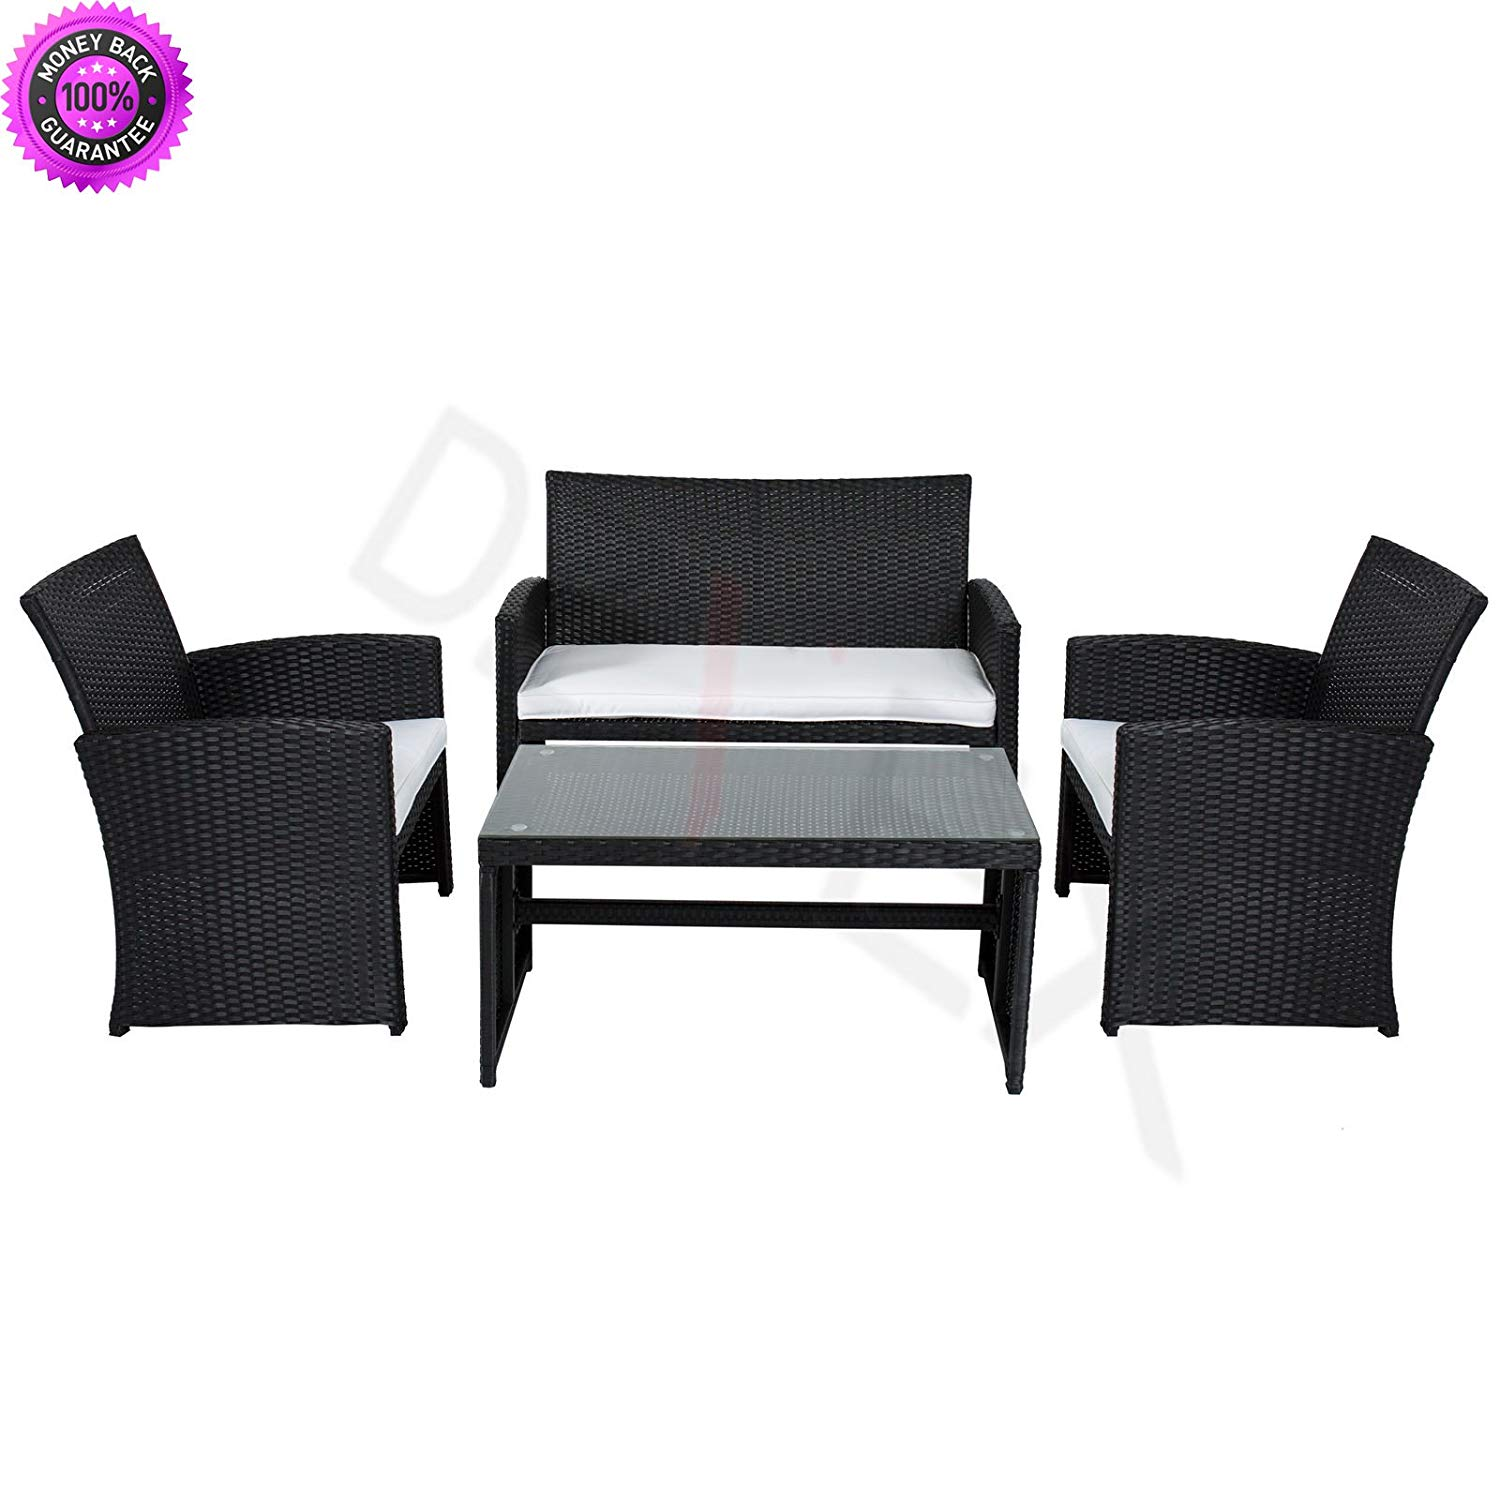 DzVeX Outdoor Garden Patio 4pc Cushioned Seat Black Wicker Sofa Furniture Set And patio furniture clearance sale patio furniture sets patio furniture lowes discount outdoor furniture patio furniture